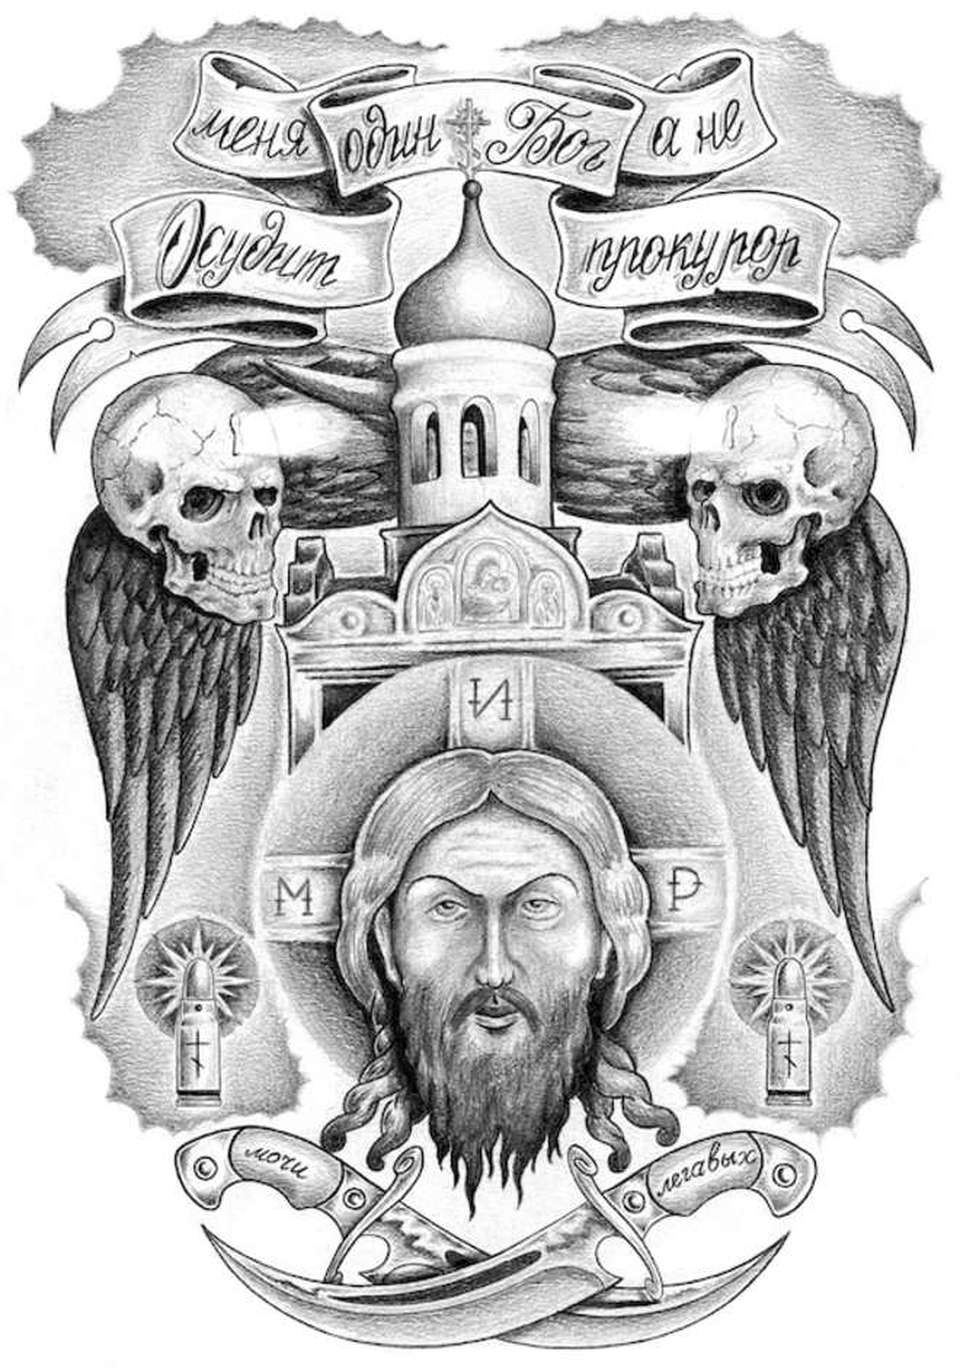 jesus-christ-siberian-tattoo-lilin-cult-stories-skulls-death